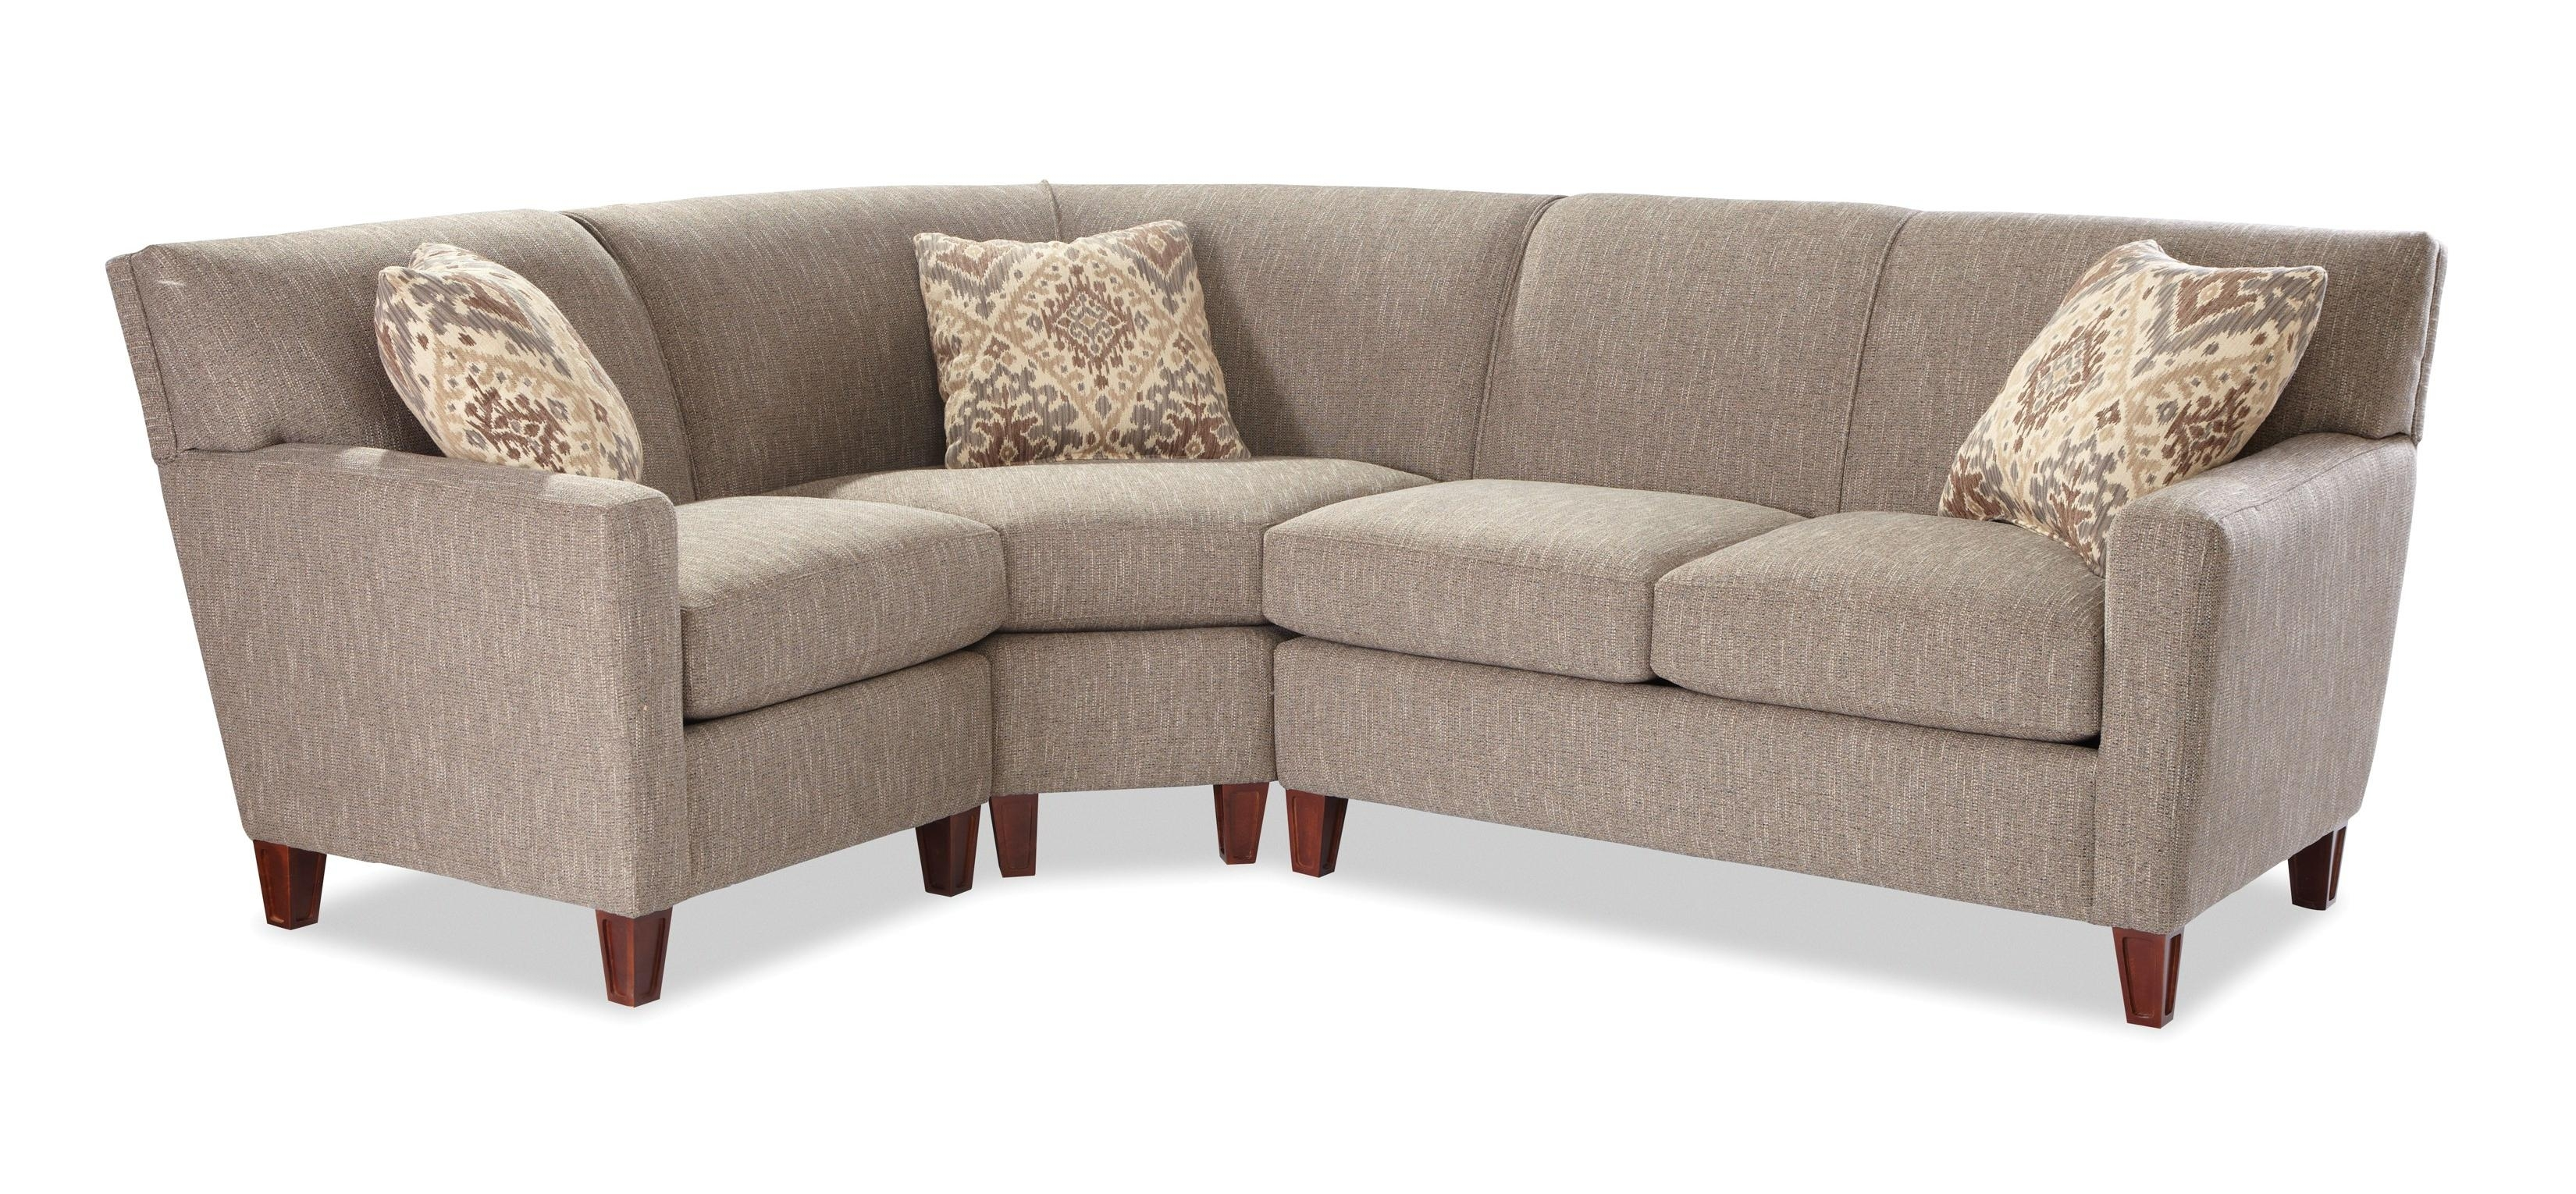 Craftmaster 7864 Three Piece Sectional Sofa With Raf Loveseat throughout Josephine 2 Piece Sectionals With Laf Sofa (Image 10 of 30)